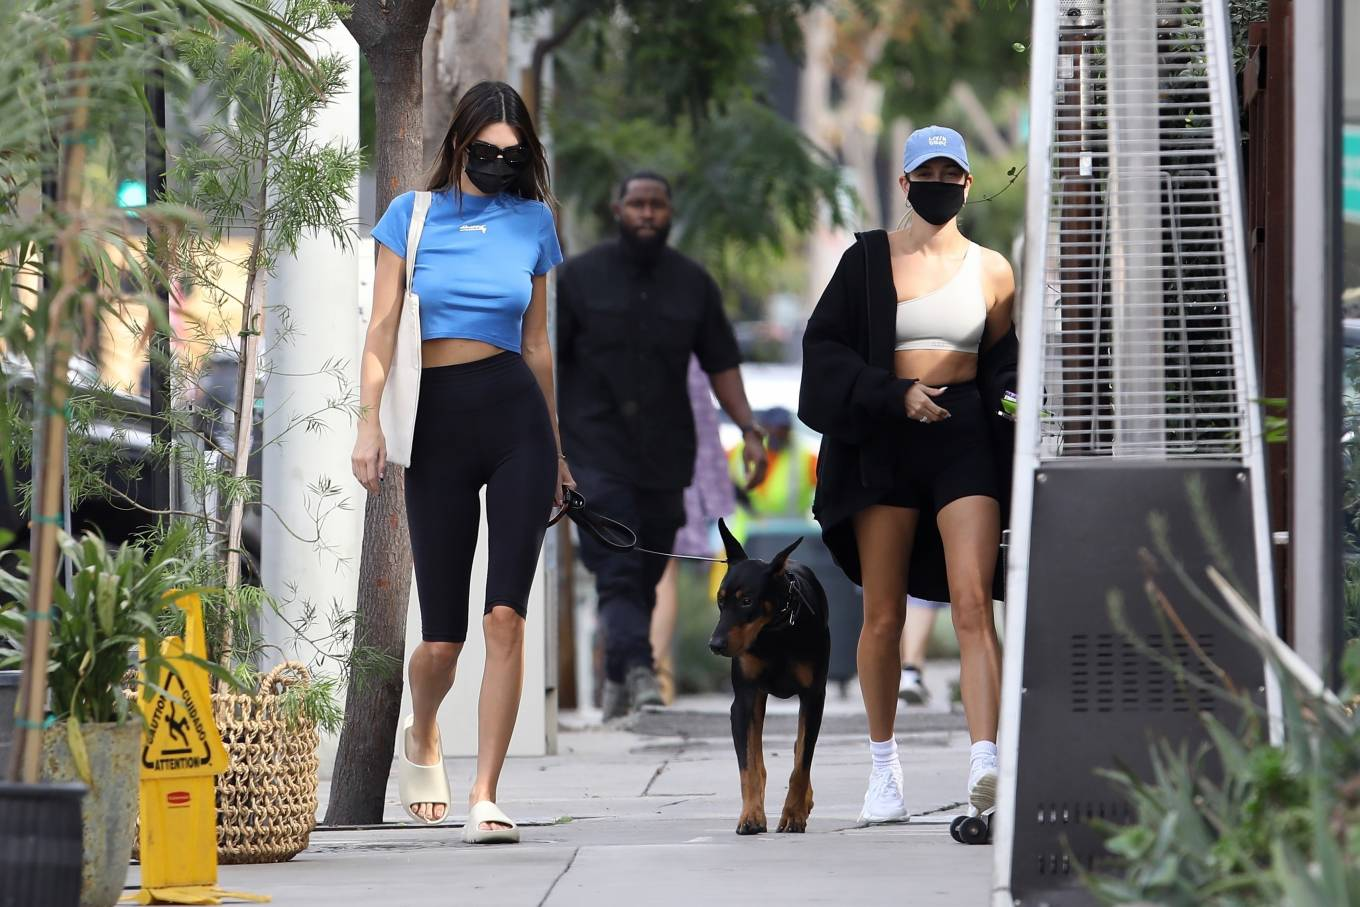 Kendall Jenner rocking a blue basic crop top with cap sleeves and a crew neck